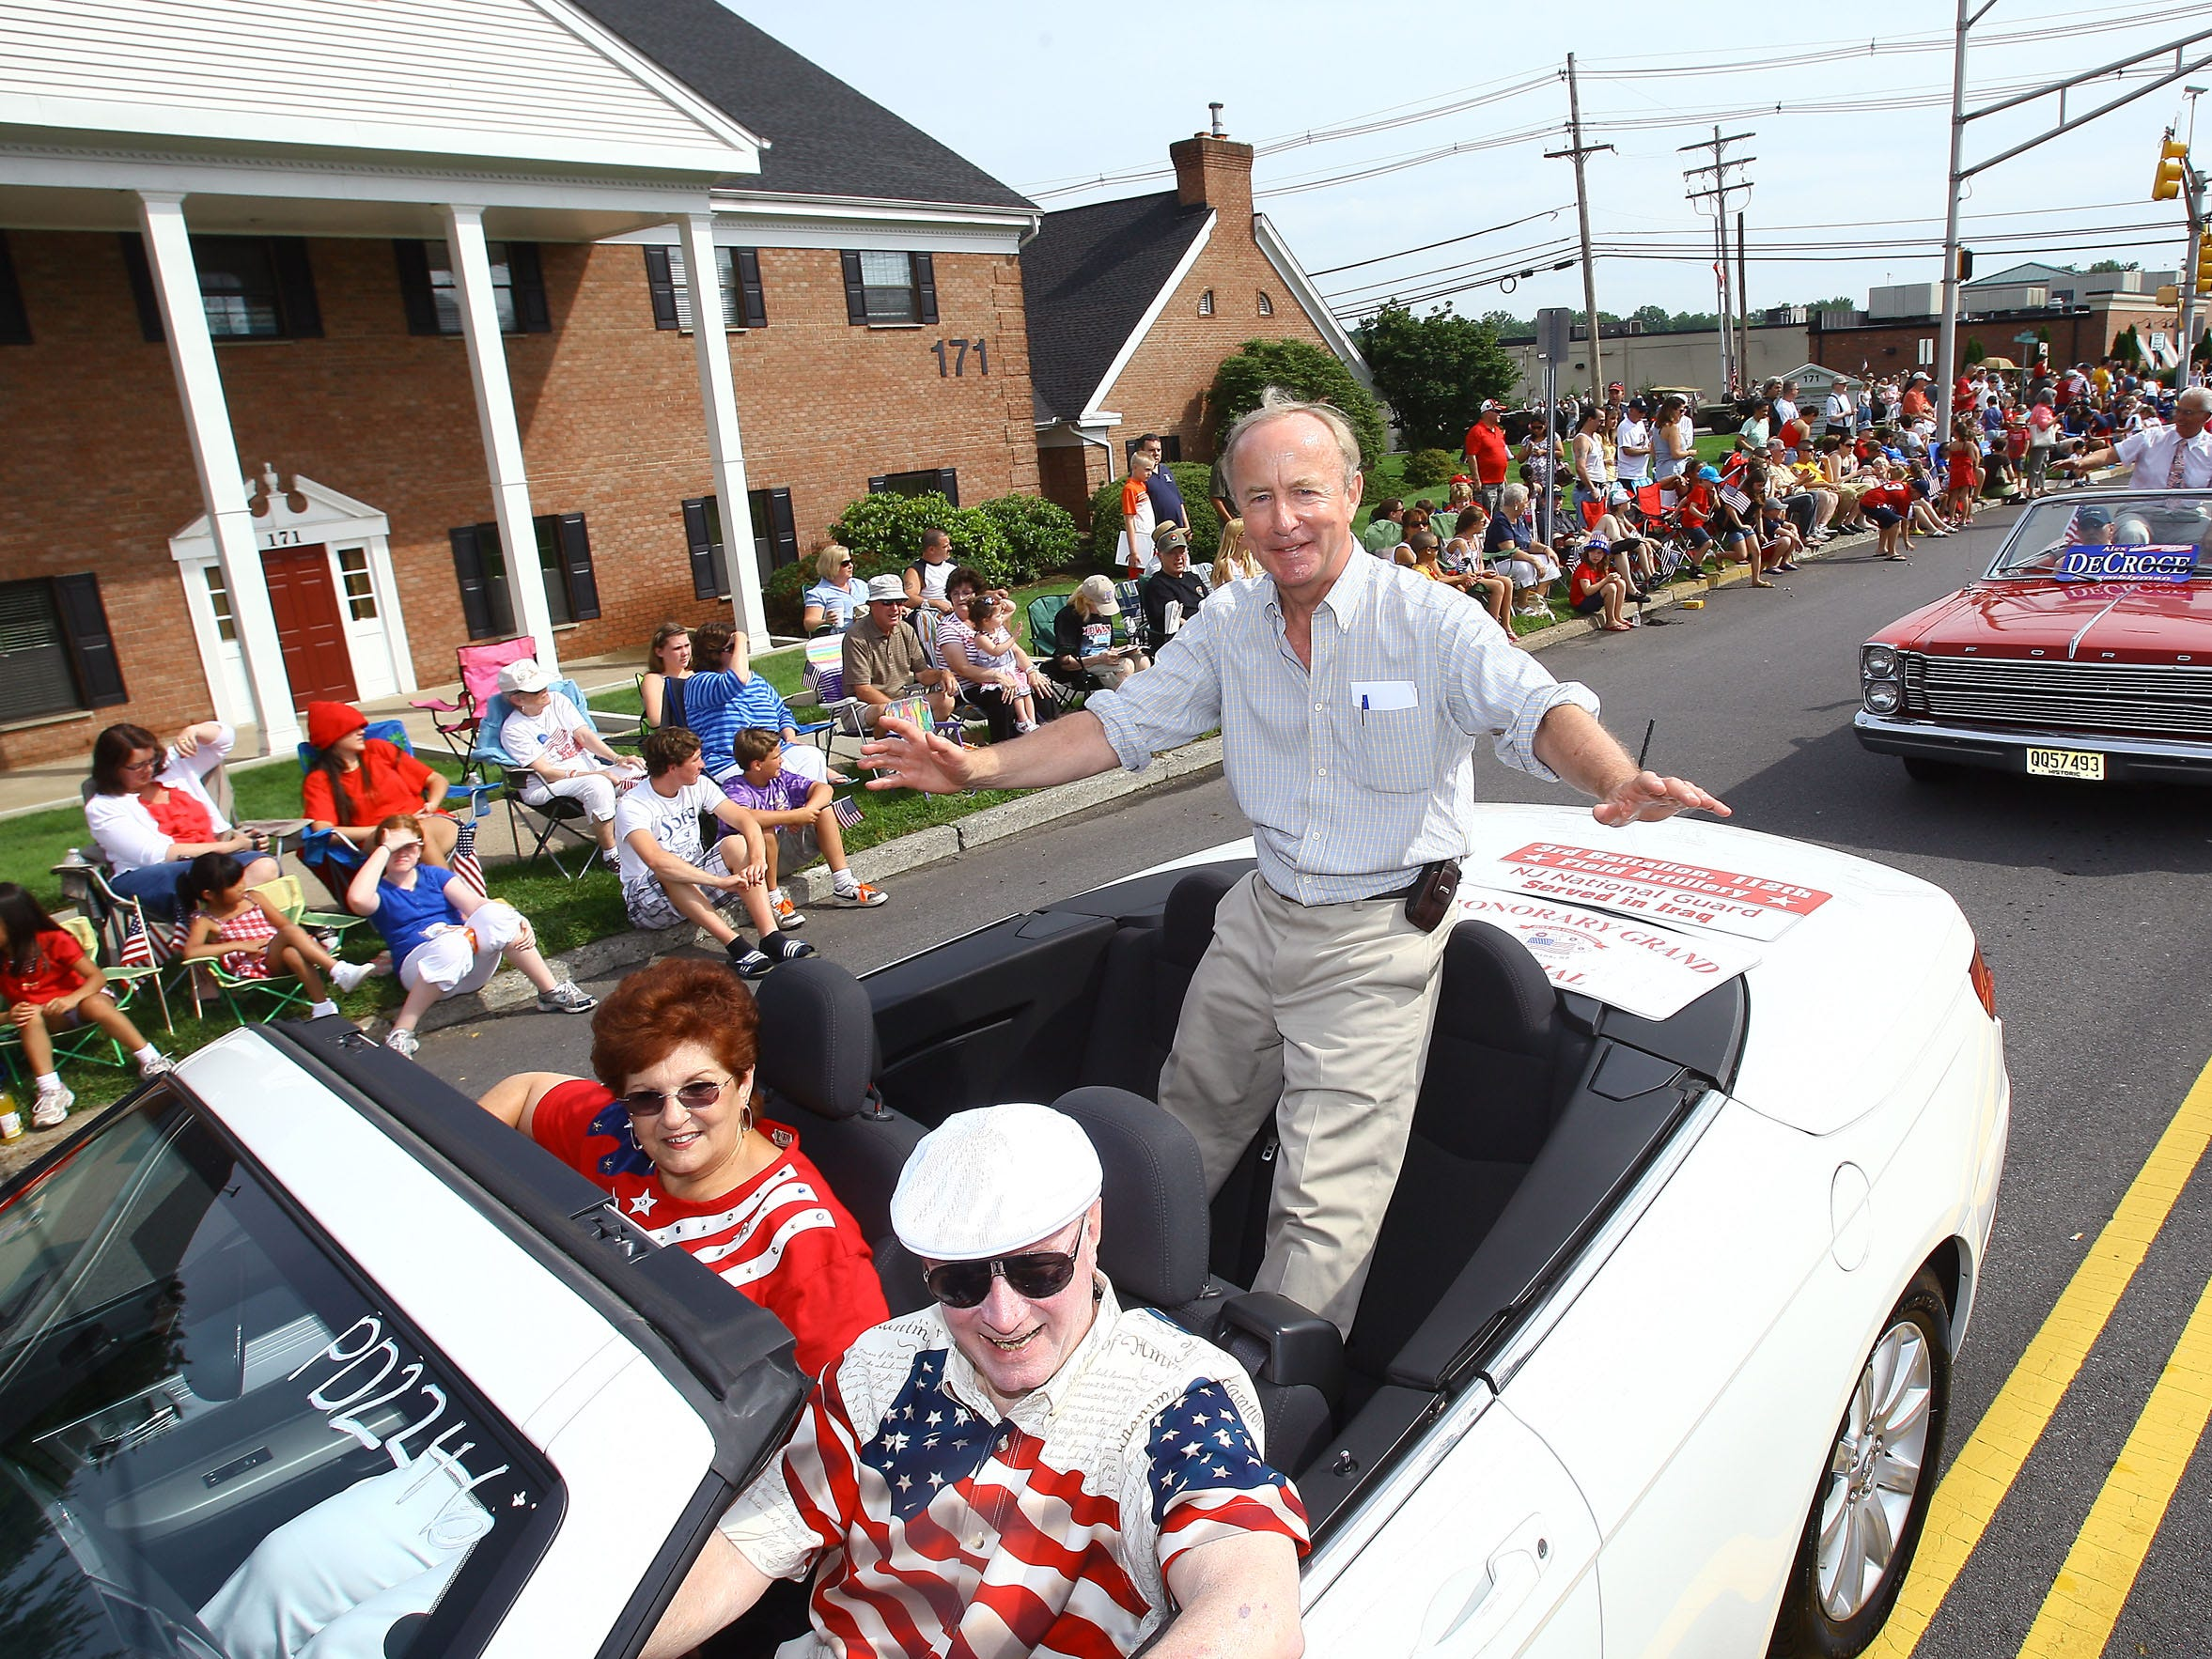 Rep. Rodney Frelinghuysen, R-N.J., waves to the crowd from a car during the parade for the 54th annual Fourth of July celebration Monday in Florham Park.BOB KARP/Staff photoGRAPHER